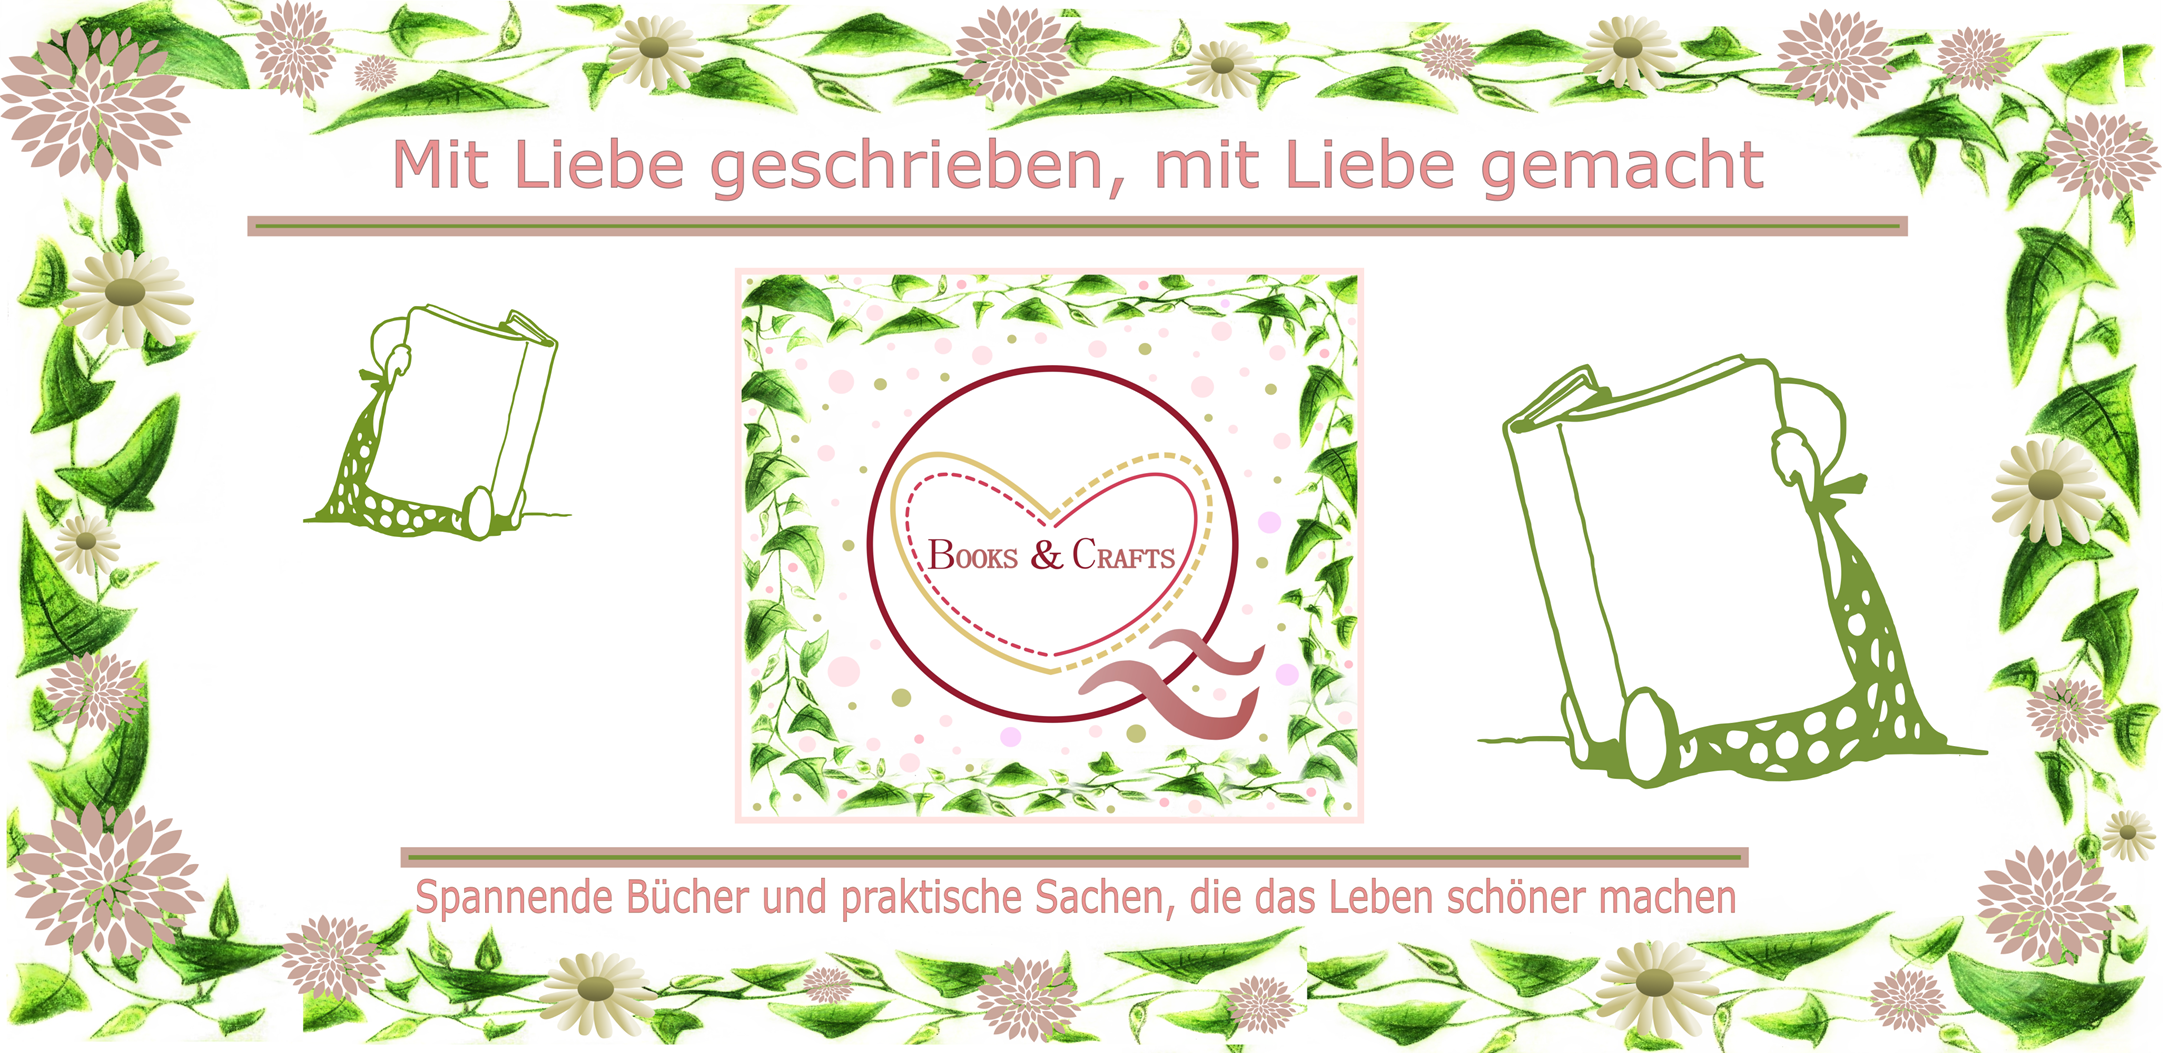 Books & Crafts,Cassandra May,books and crafts,Hallgard,Phantasie,Kunst,Bücher,E-Books,Kinderbuch,Ostergockel,Märchenbücher